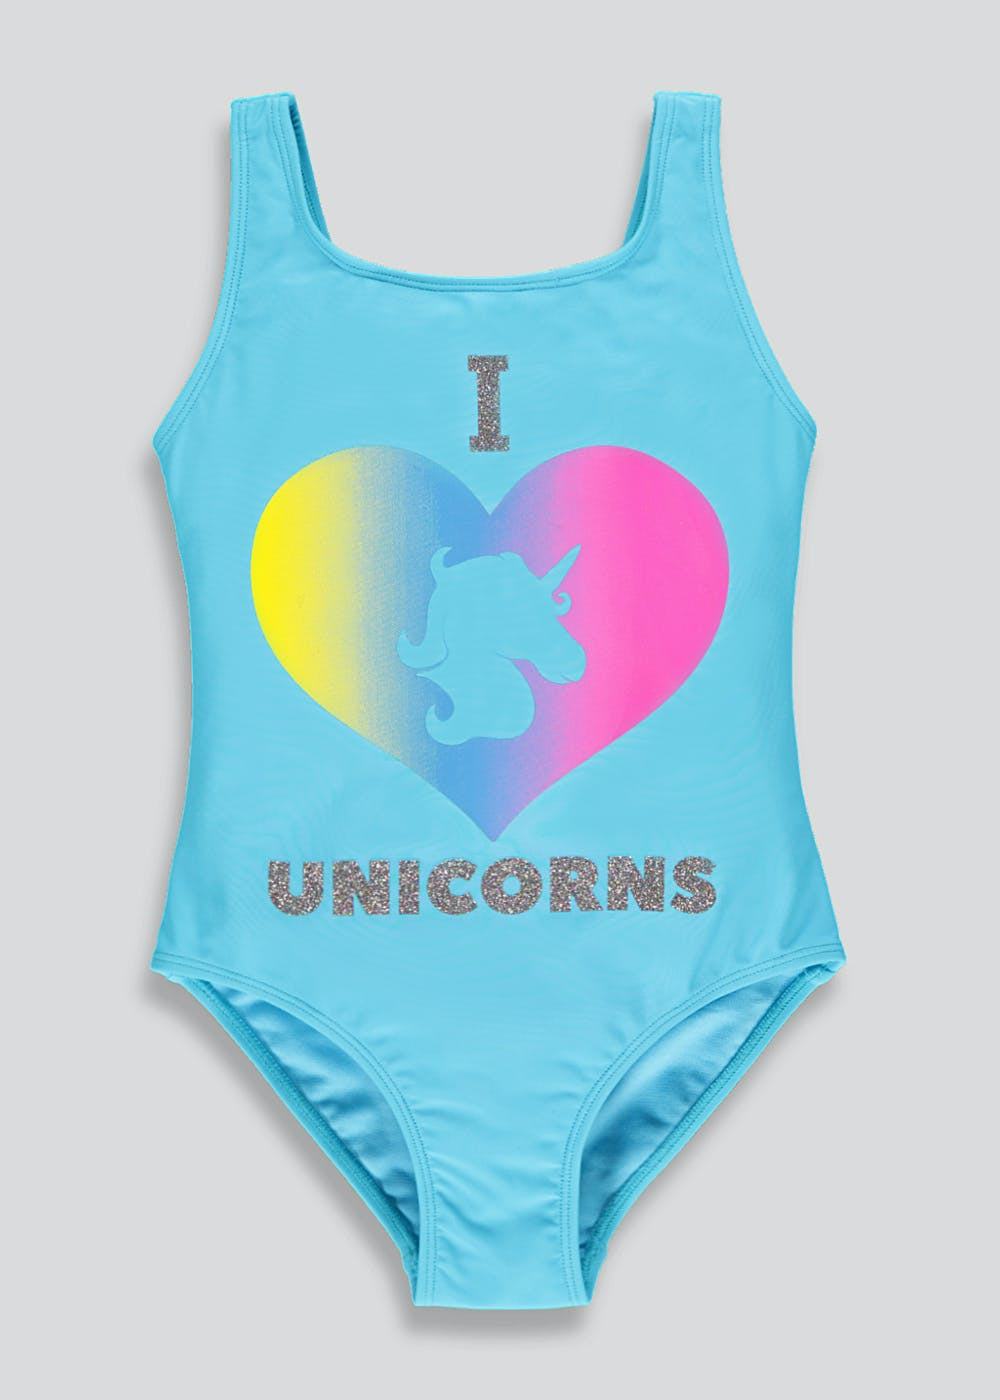 e1c744a2b39e7 Girls Unicorn Slogan Swimming Costume (4-13yrs) – Turquoise – Matalan